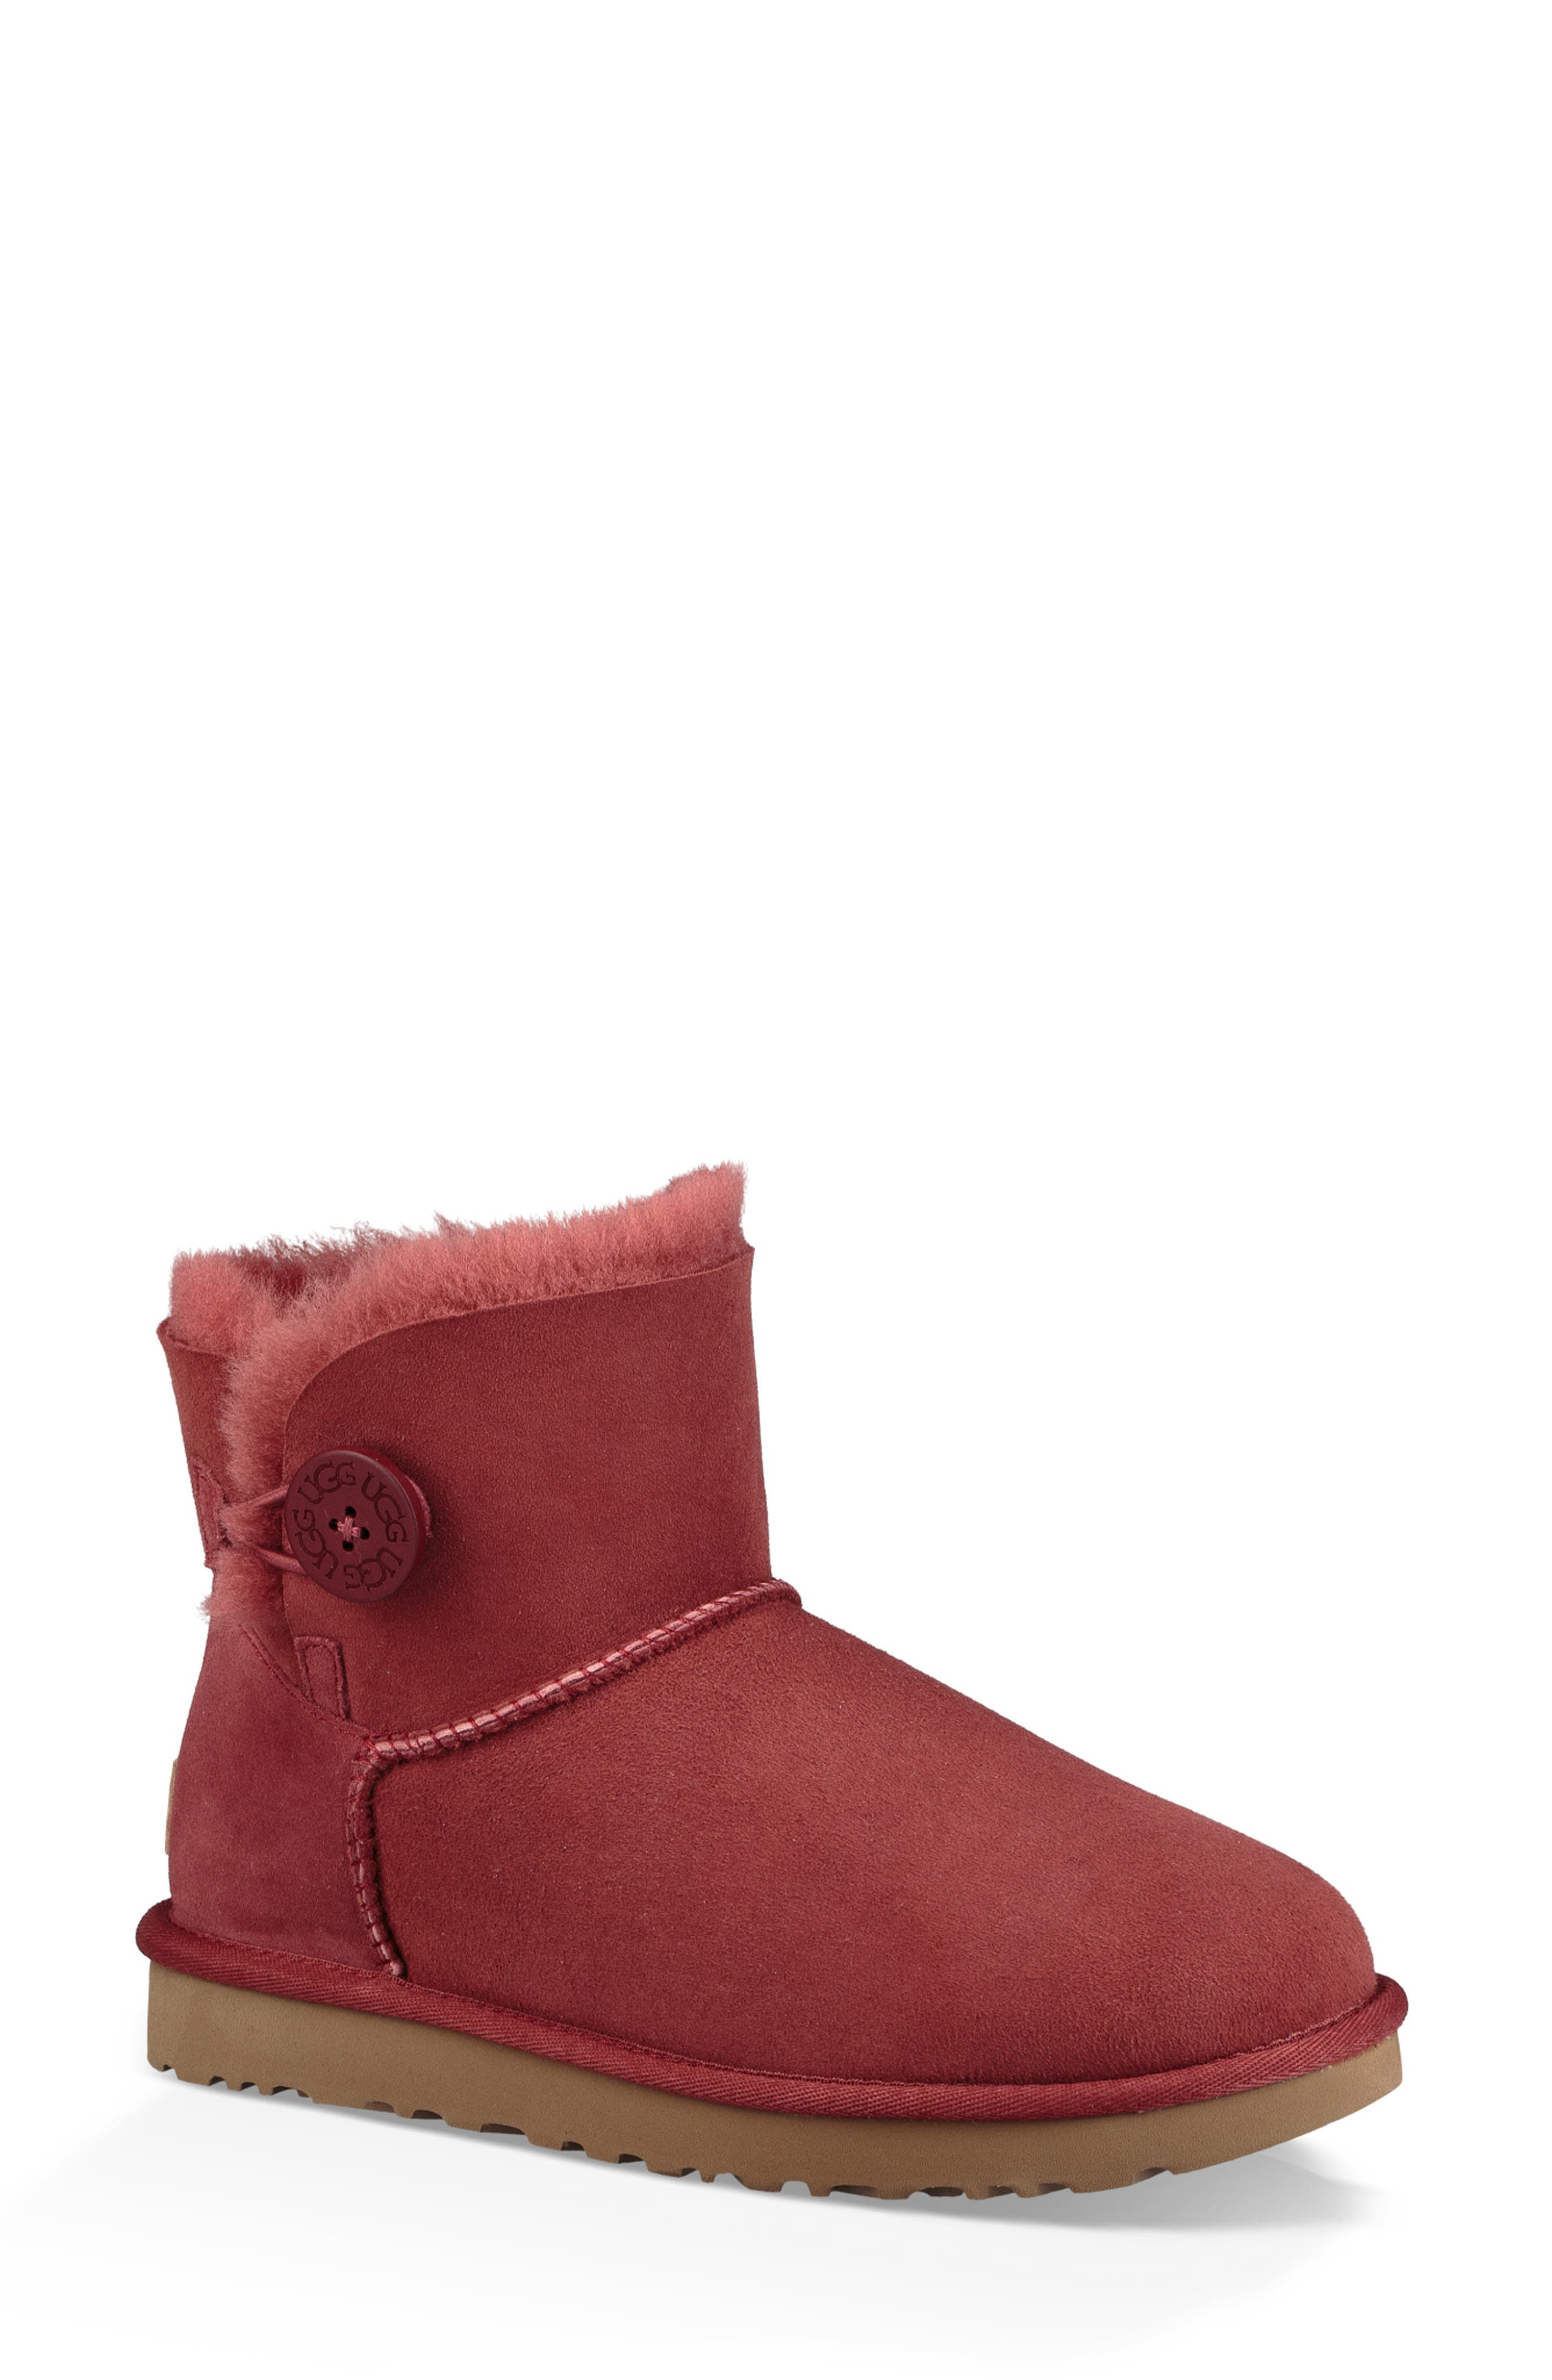 'Mini Bailey Button II' Boot,                             Main thumbnail 1, color,                             REDWOOD SUEDE